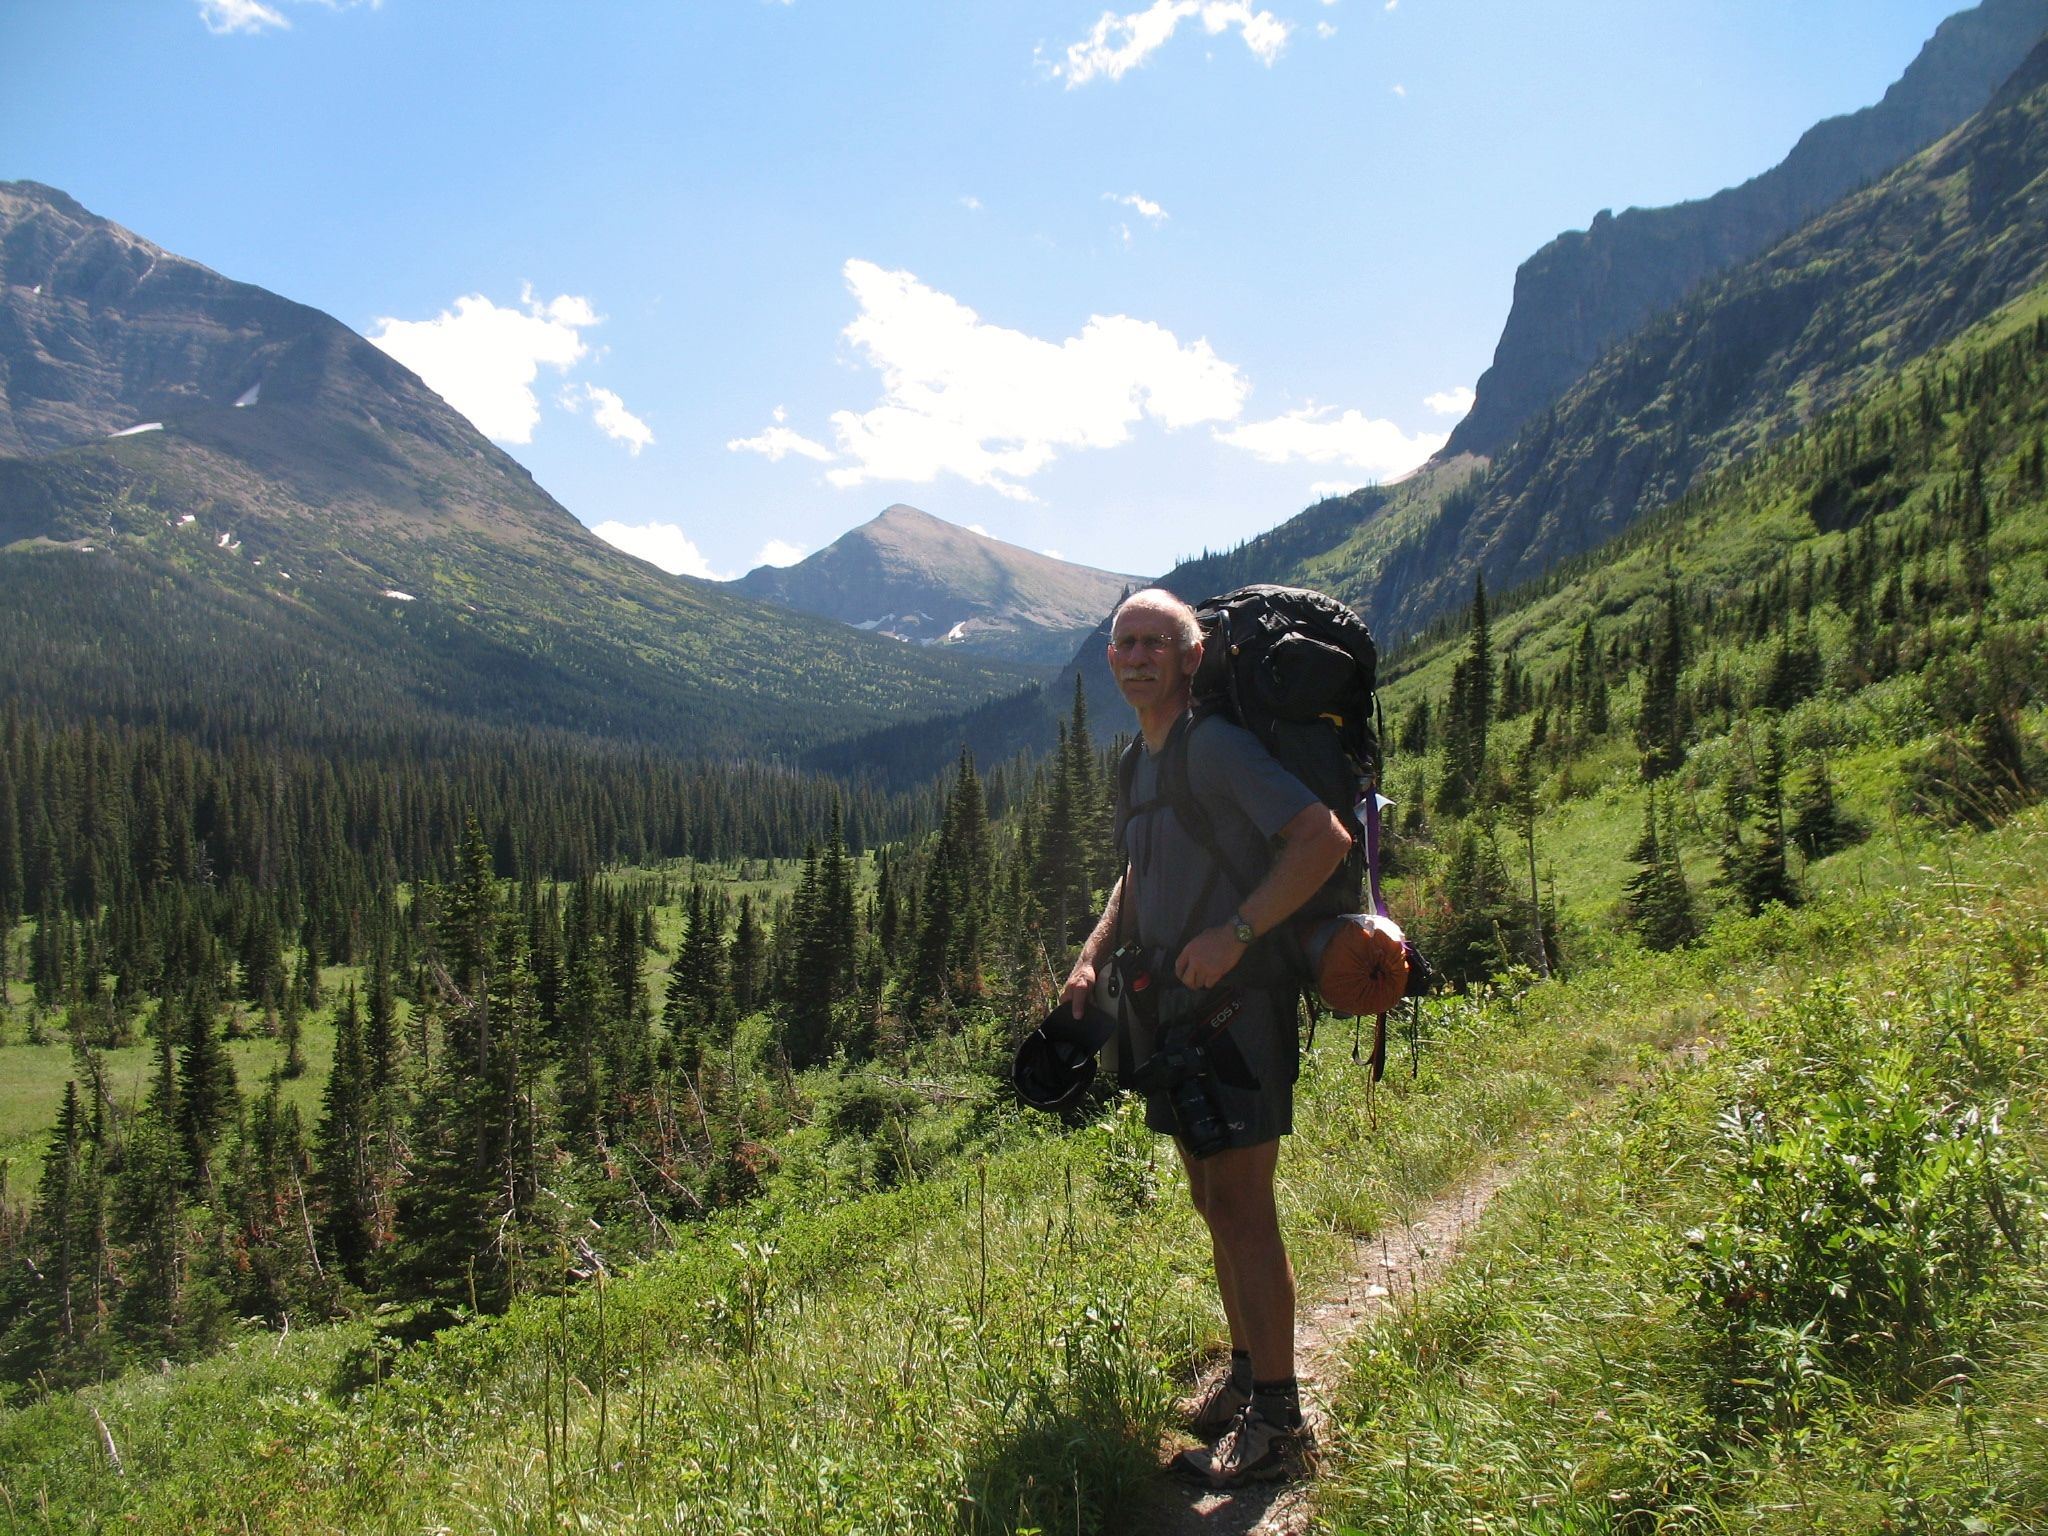 Dave hiking into Morningstar Lake for an overnighter. Glacier National Park, Montana, July 2012.